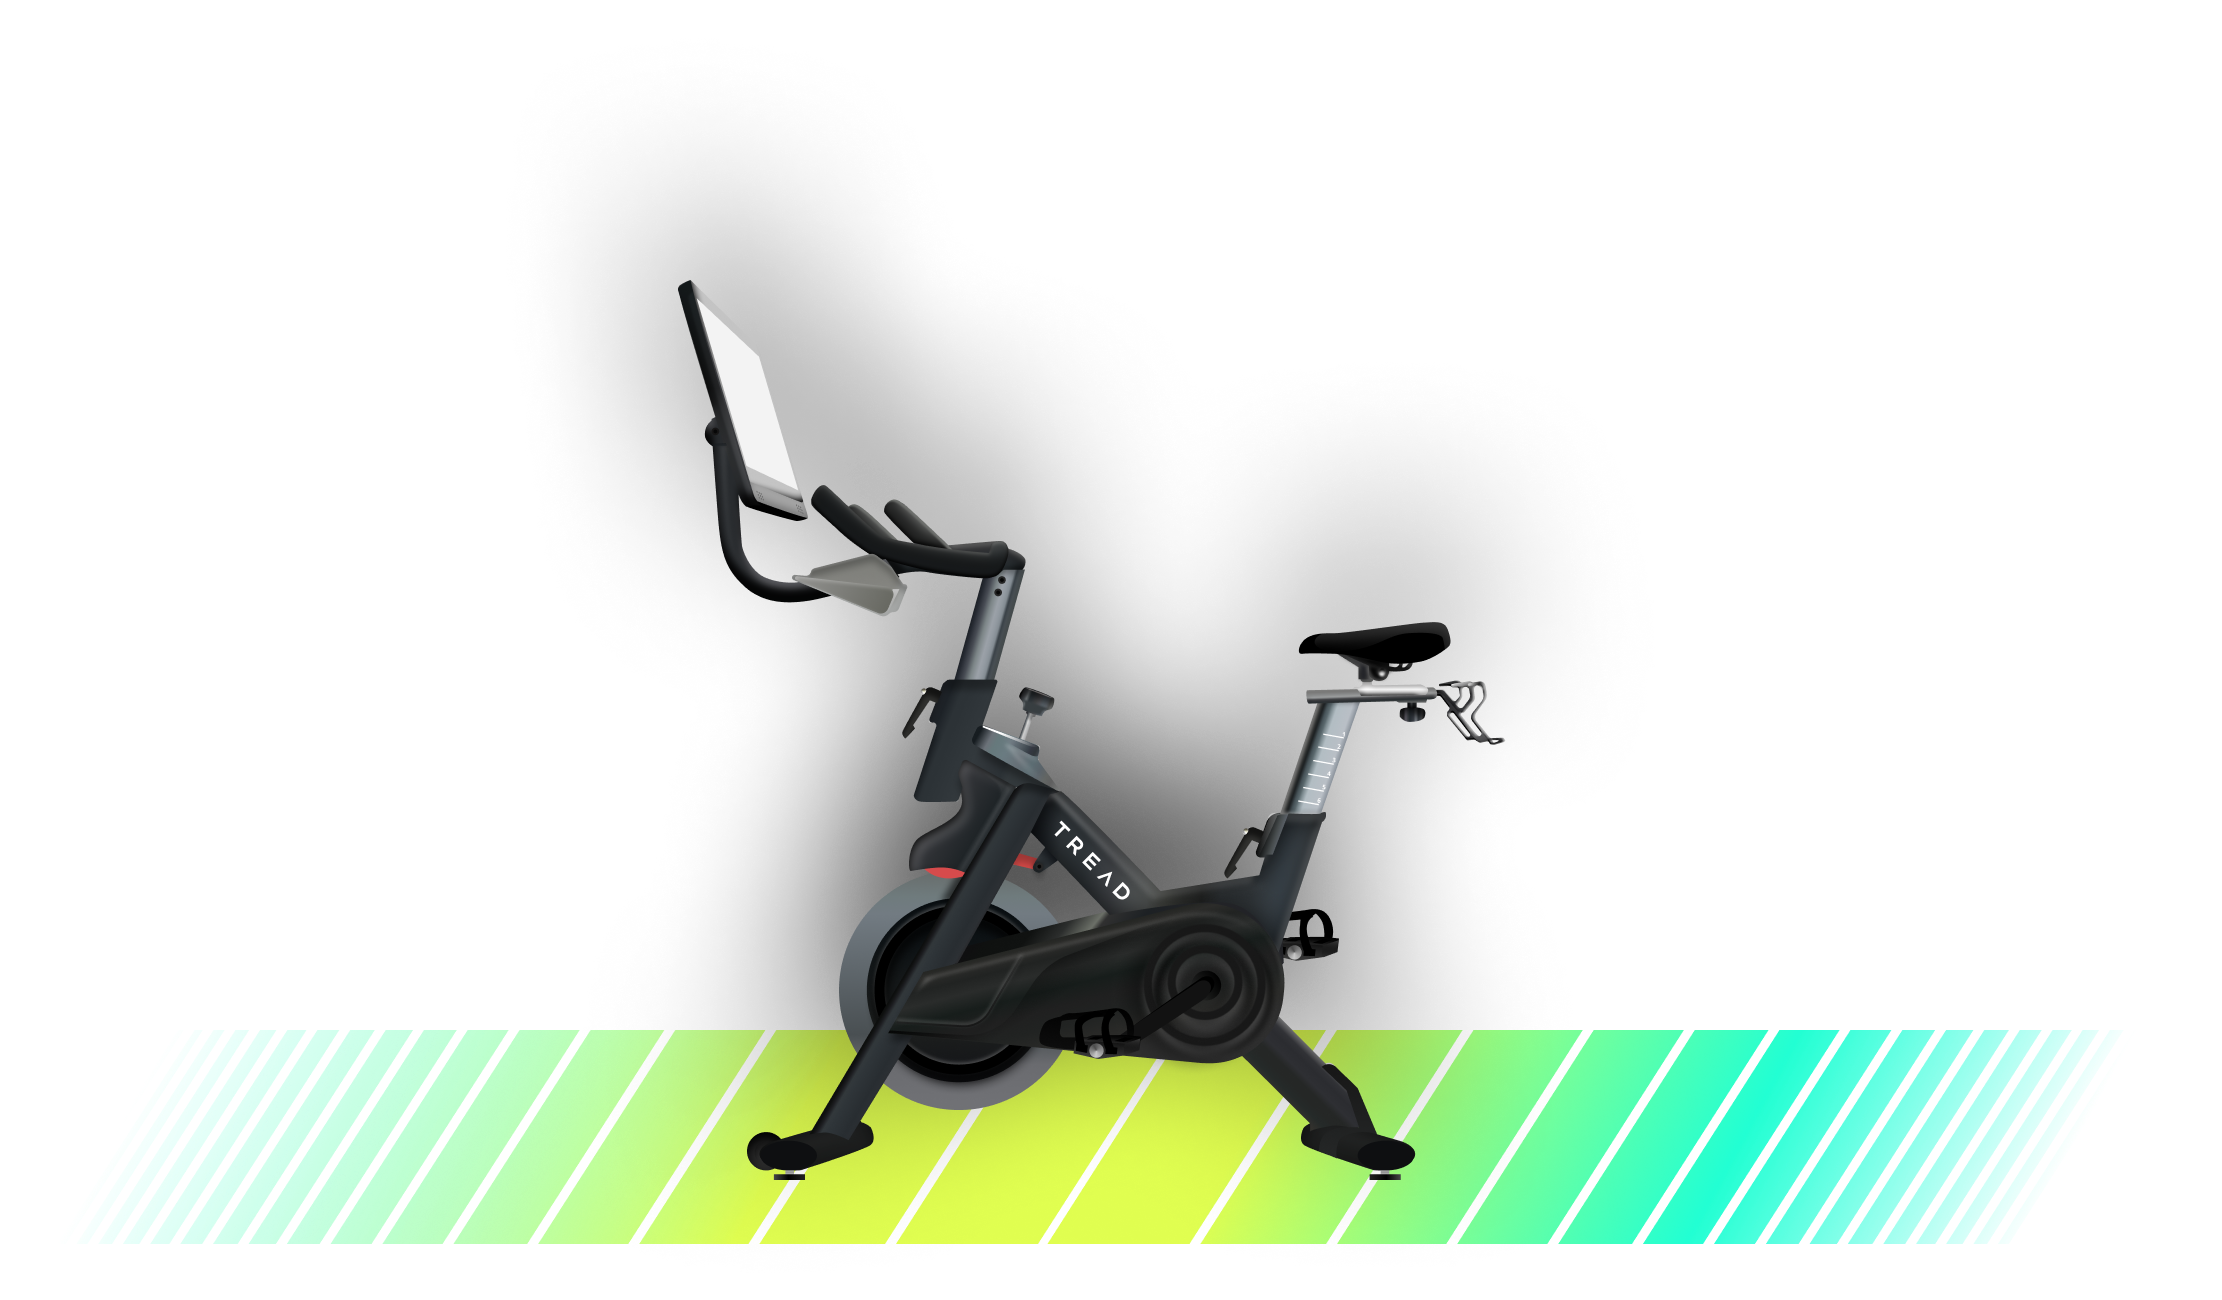 TREAD One Exercise Bike